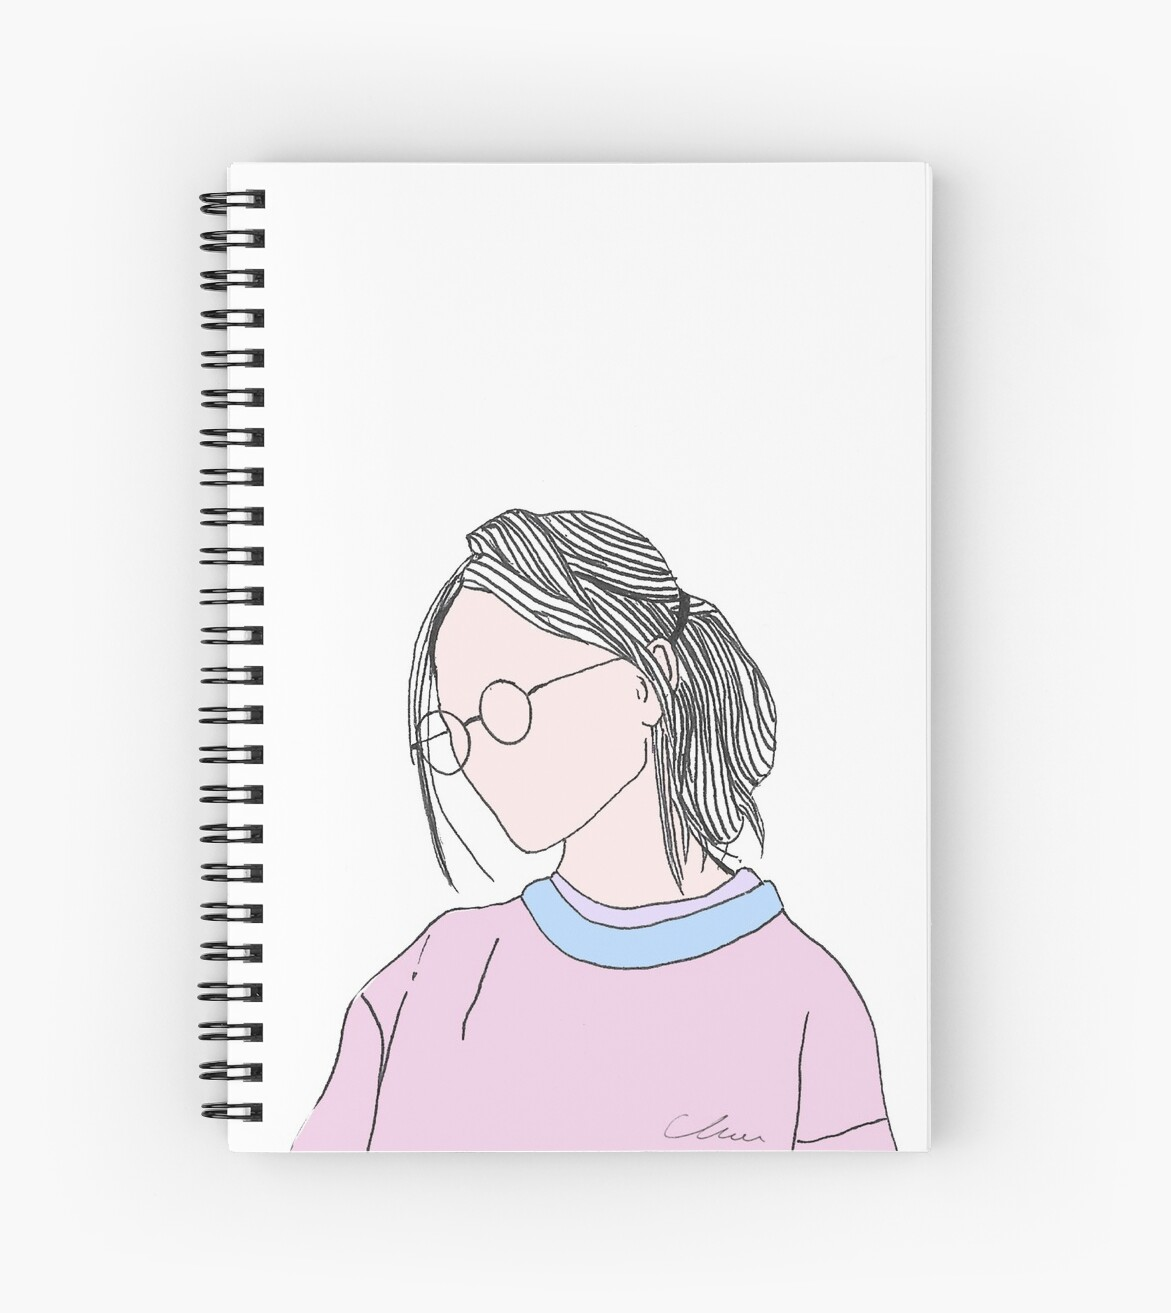 Aesthetic Girl Teenager With Glasses Colored Version Spiral